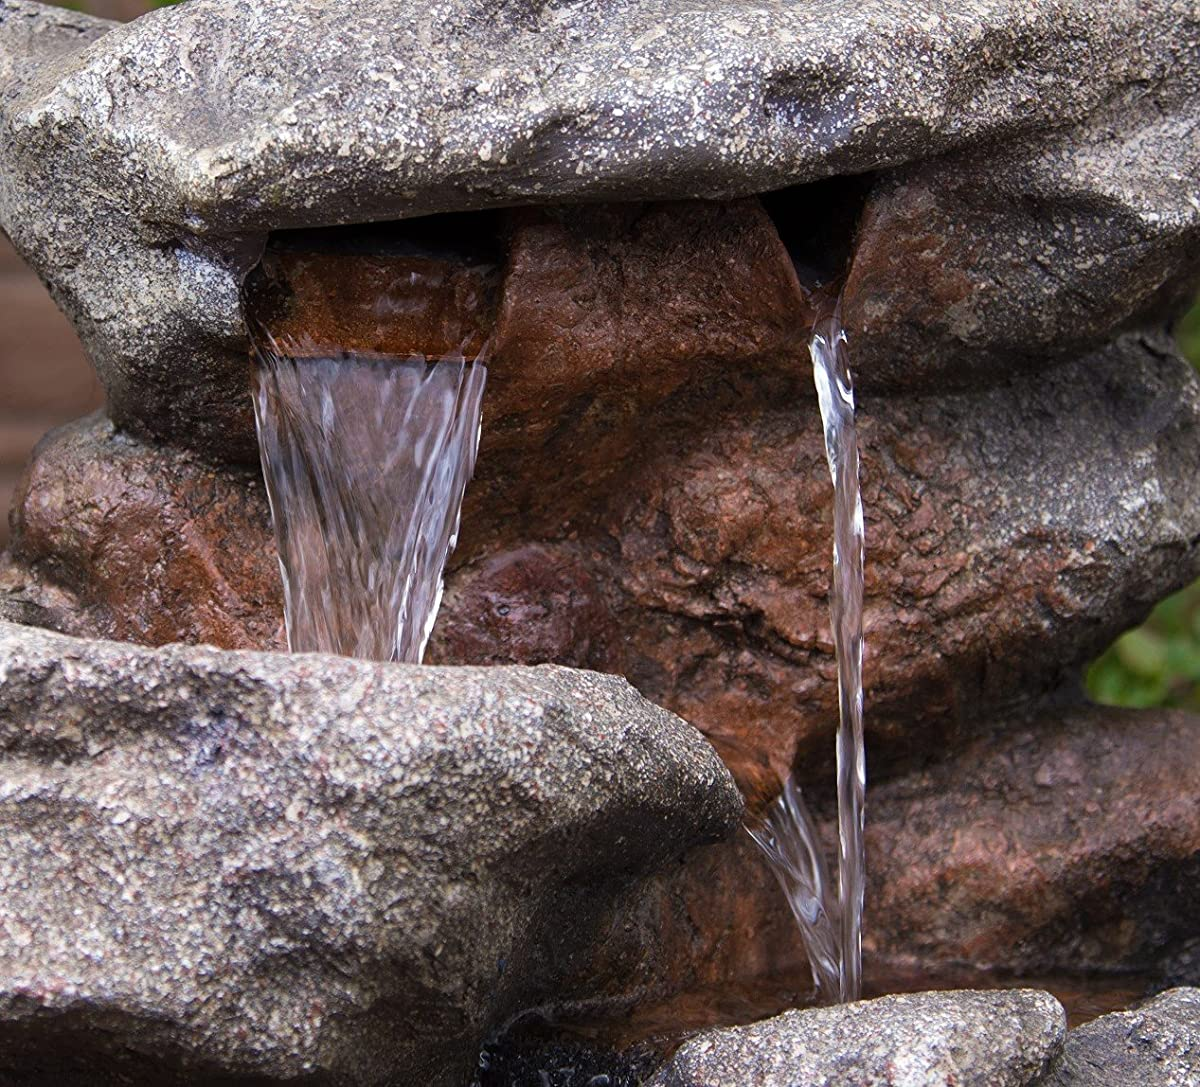 Bear Creek Waterfall Fountain: Towering Rock Outdoor Water Feature for Gardens & Patios. Hand-crafted Weather Resistant Resin. LED Lights & Pump Included.